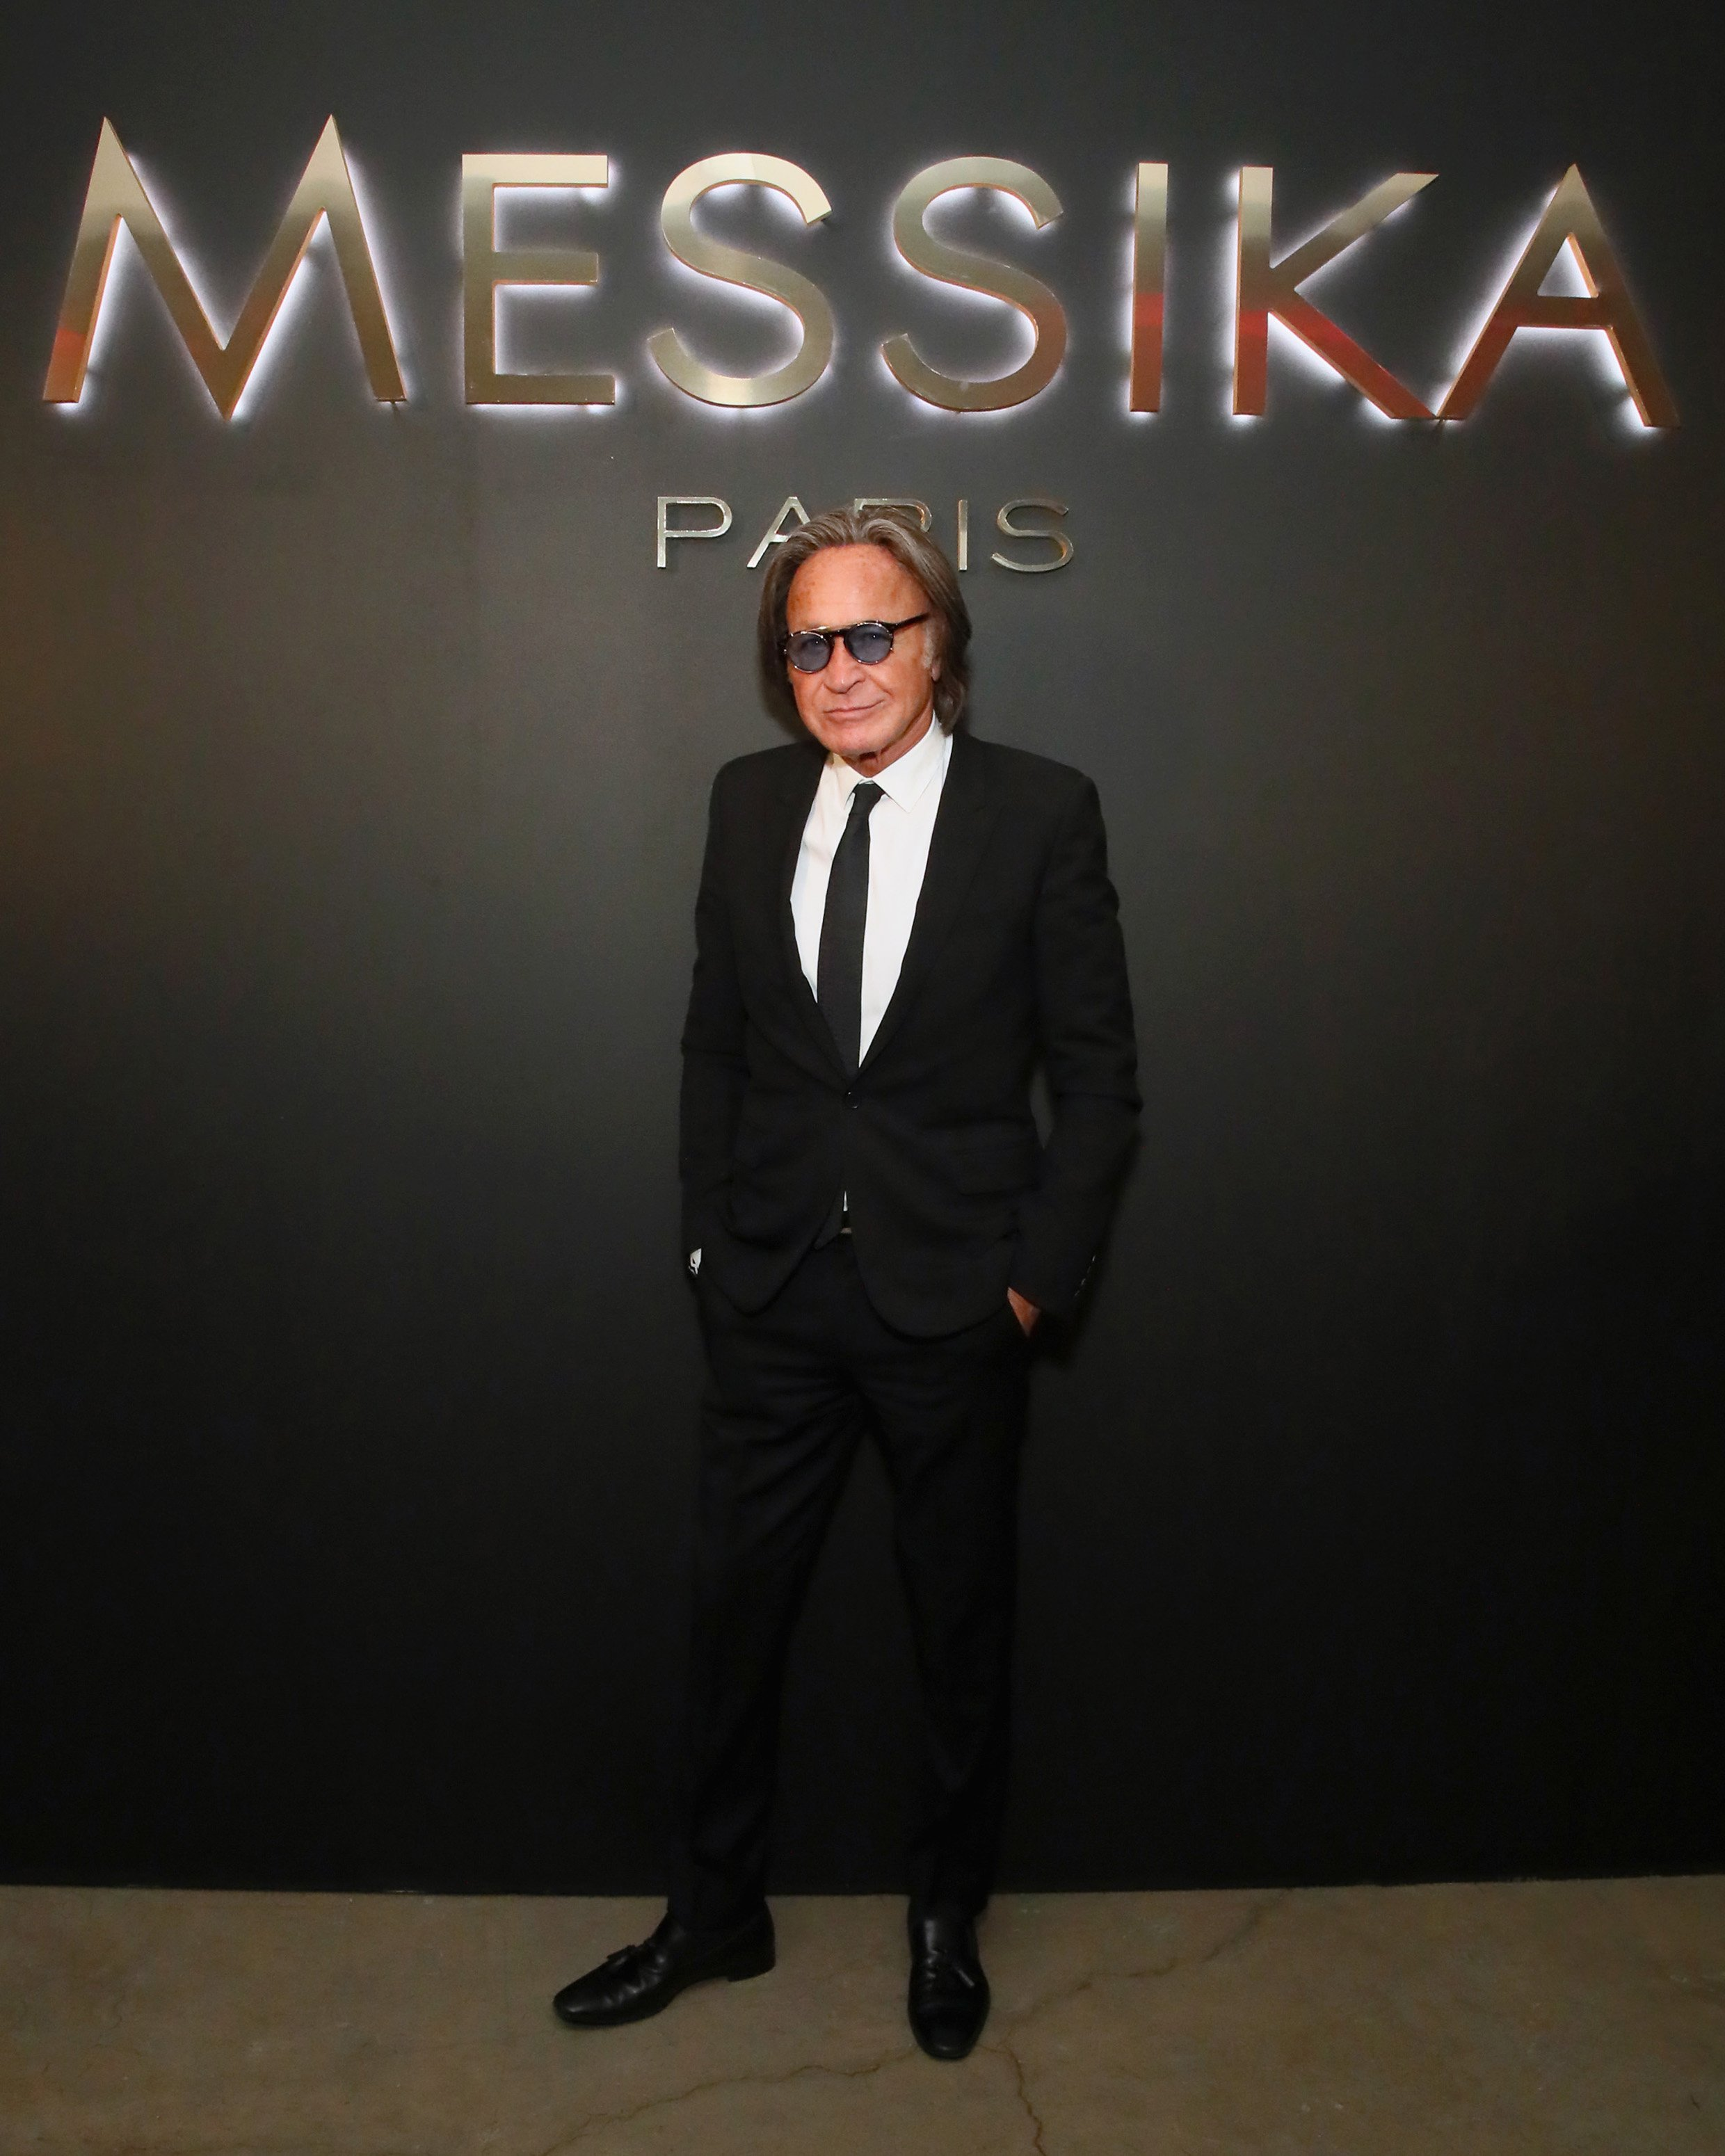 Mohamed Hadid attends NYC Fashion Week Spring/Summer 2019 Launch Of The Messika By Gigi Hadid at Milk Studios on September 12, 2018 in New York City | Photo: GettyImages